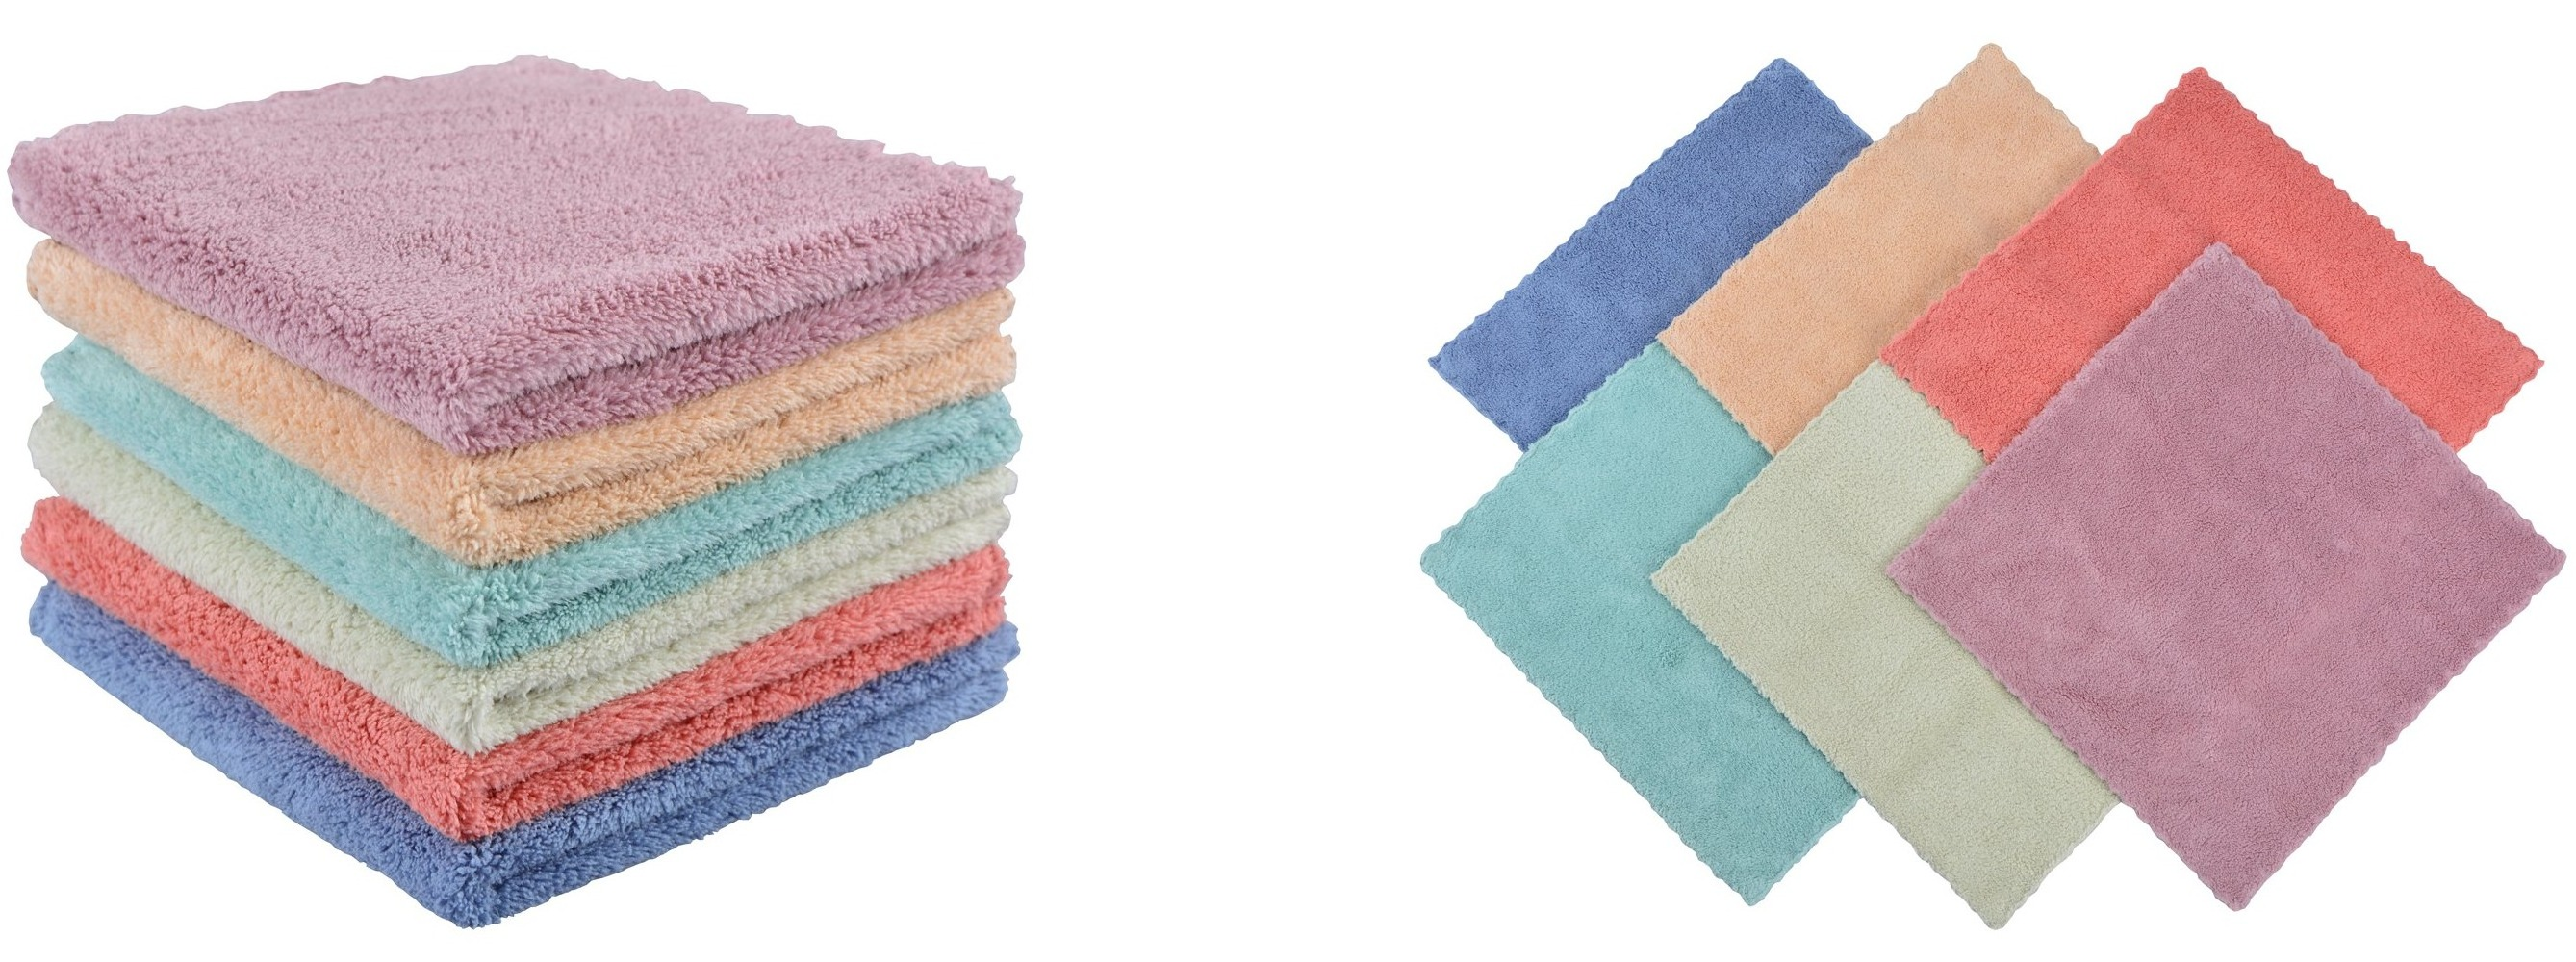 face makeup remover microfiber cloths